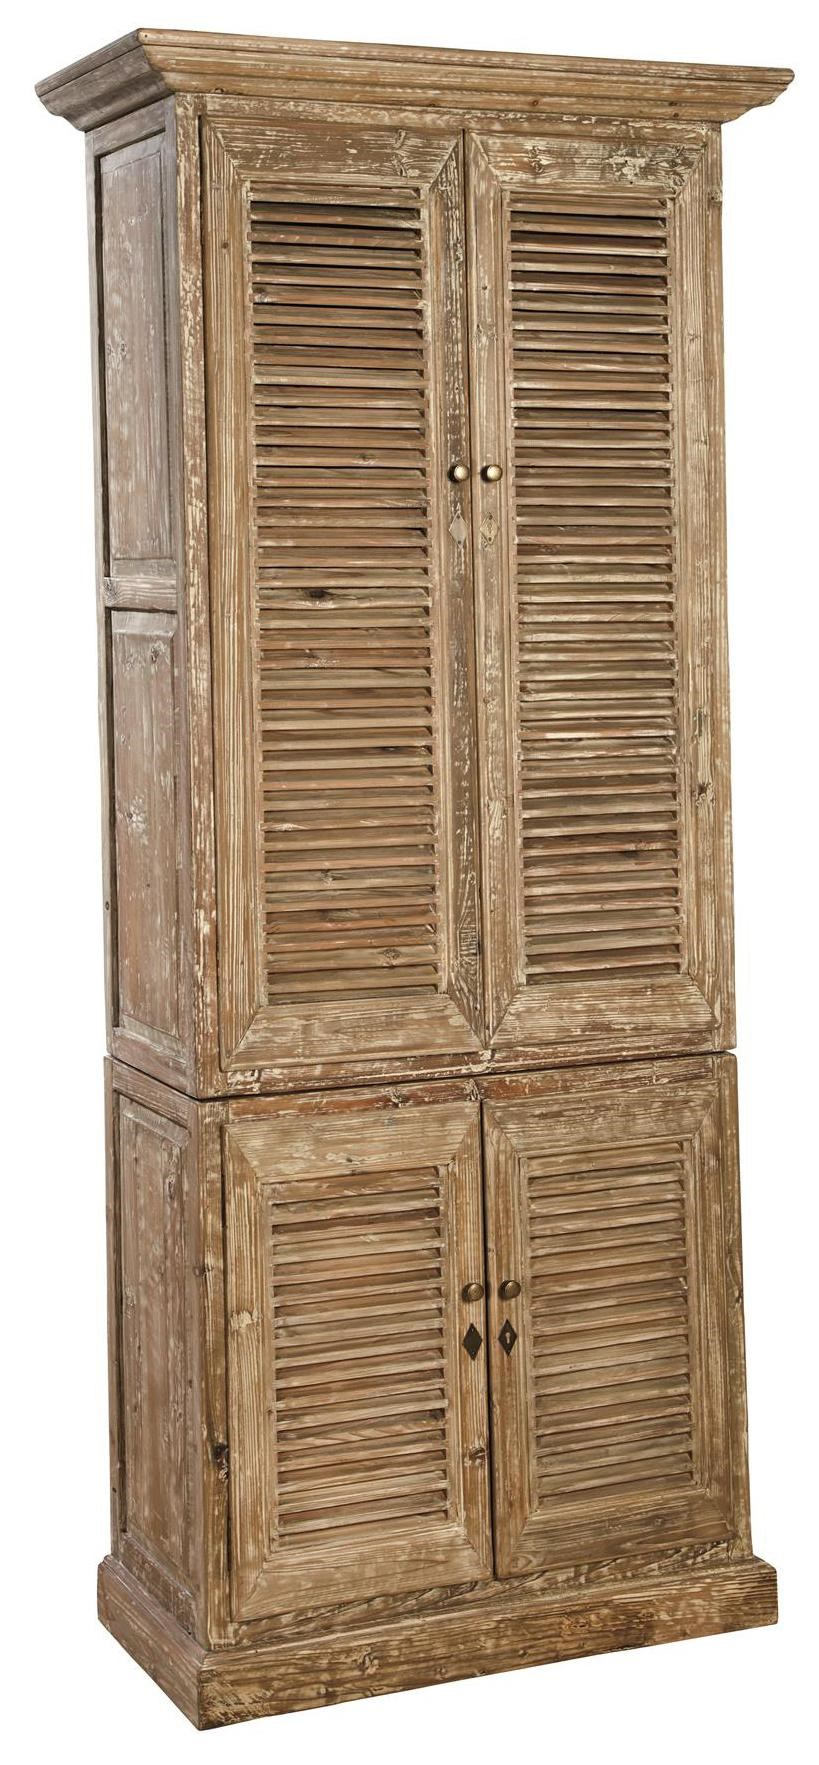 Attractive Accents Rustic Reclaimed Wood Hilton Linen Cabinet By Furniture Classics